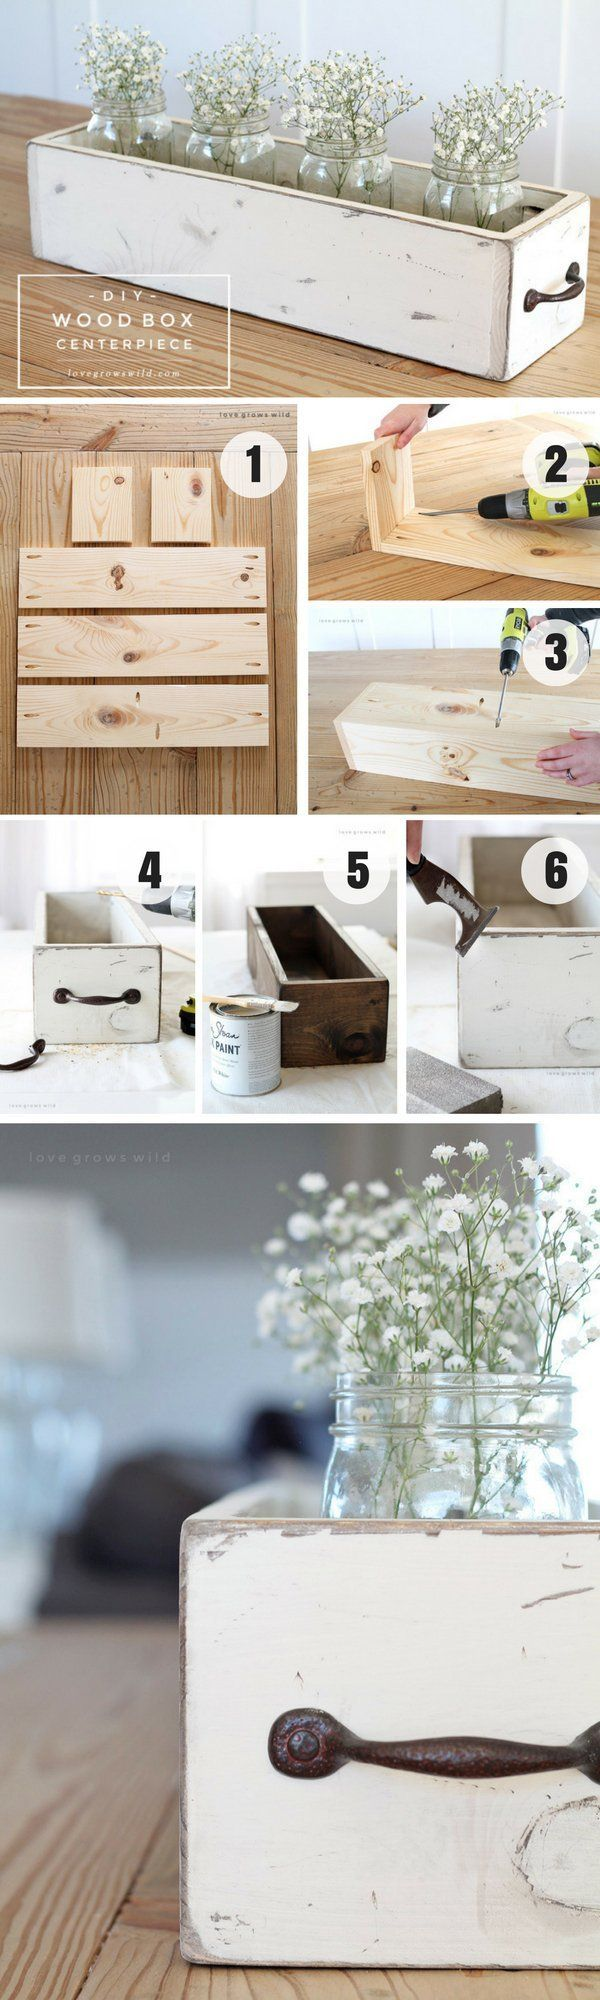 25 best ideas about wooden box centerpiece on pinterest wooden centerpieces planter box - Diy projects with wooden palletsideas easy to carry out ...